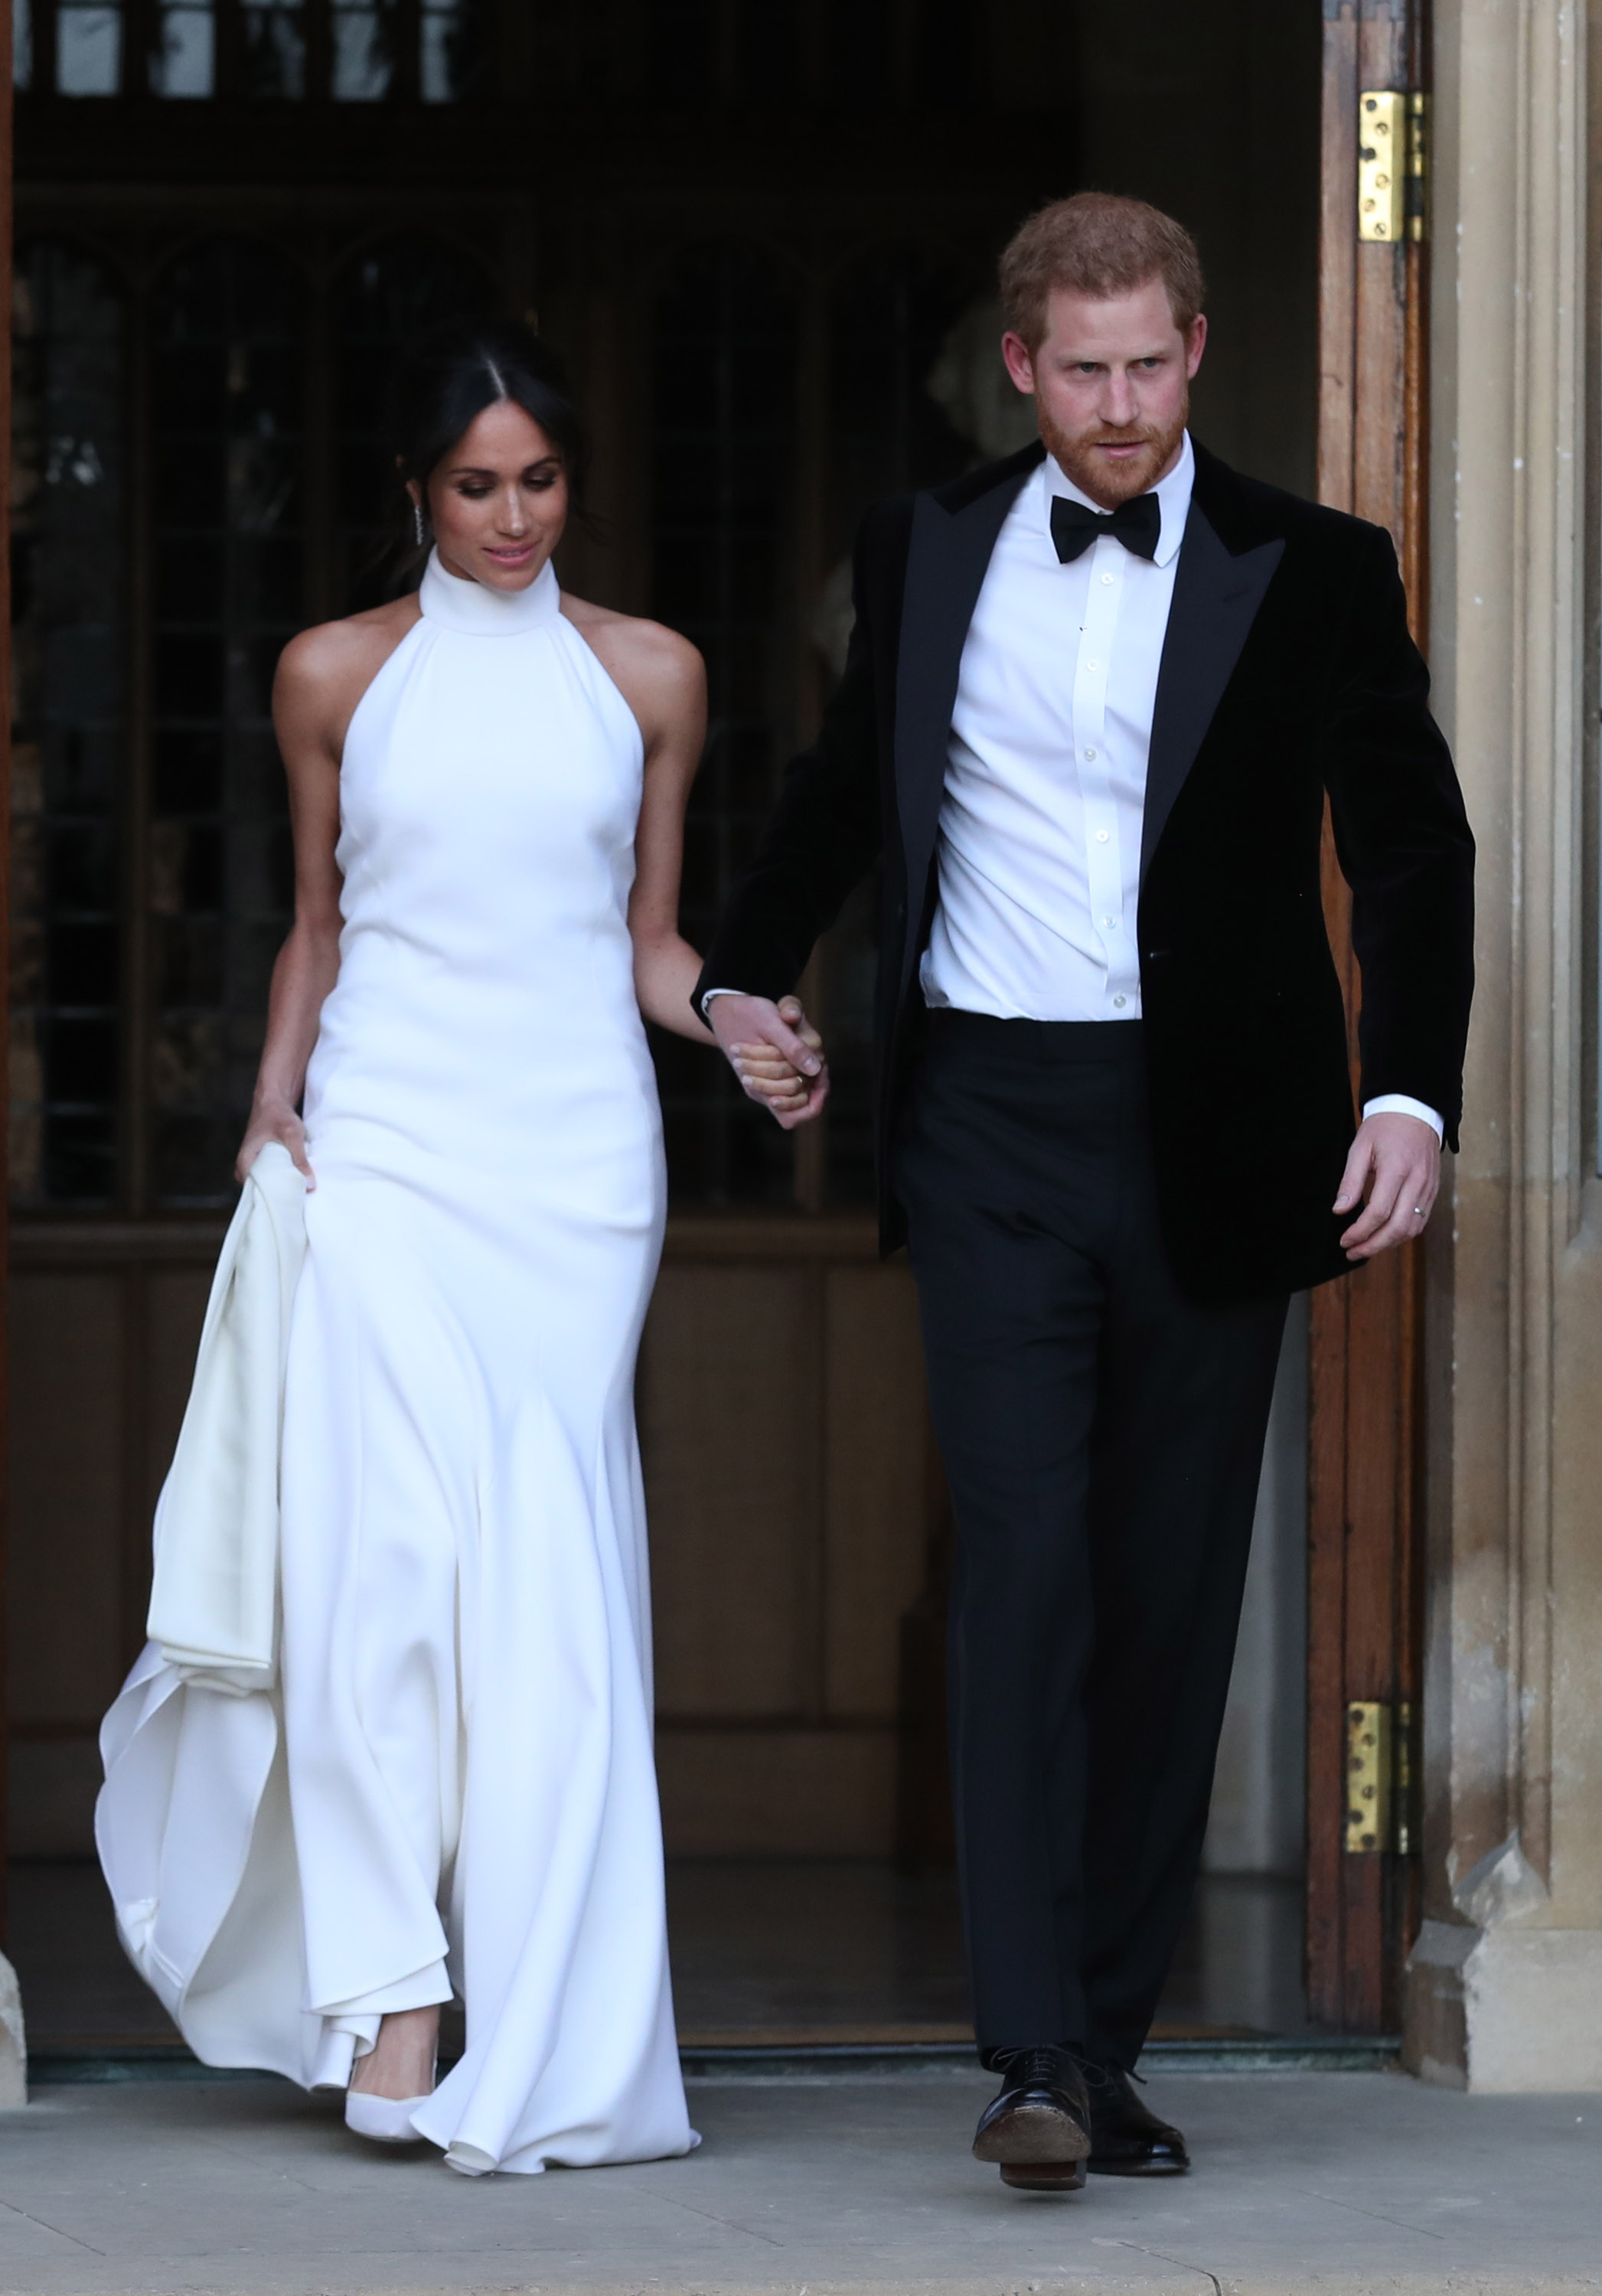 Duchess of Sussex and Prince Harry, Duke of Sussex leave Windsor Castle after their wedding to attend an evening reception at Frogmore House, hosted by the Prince of Wales on May 19, 2018, in Windsor, England. (Getty Images)